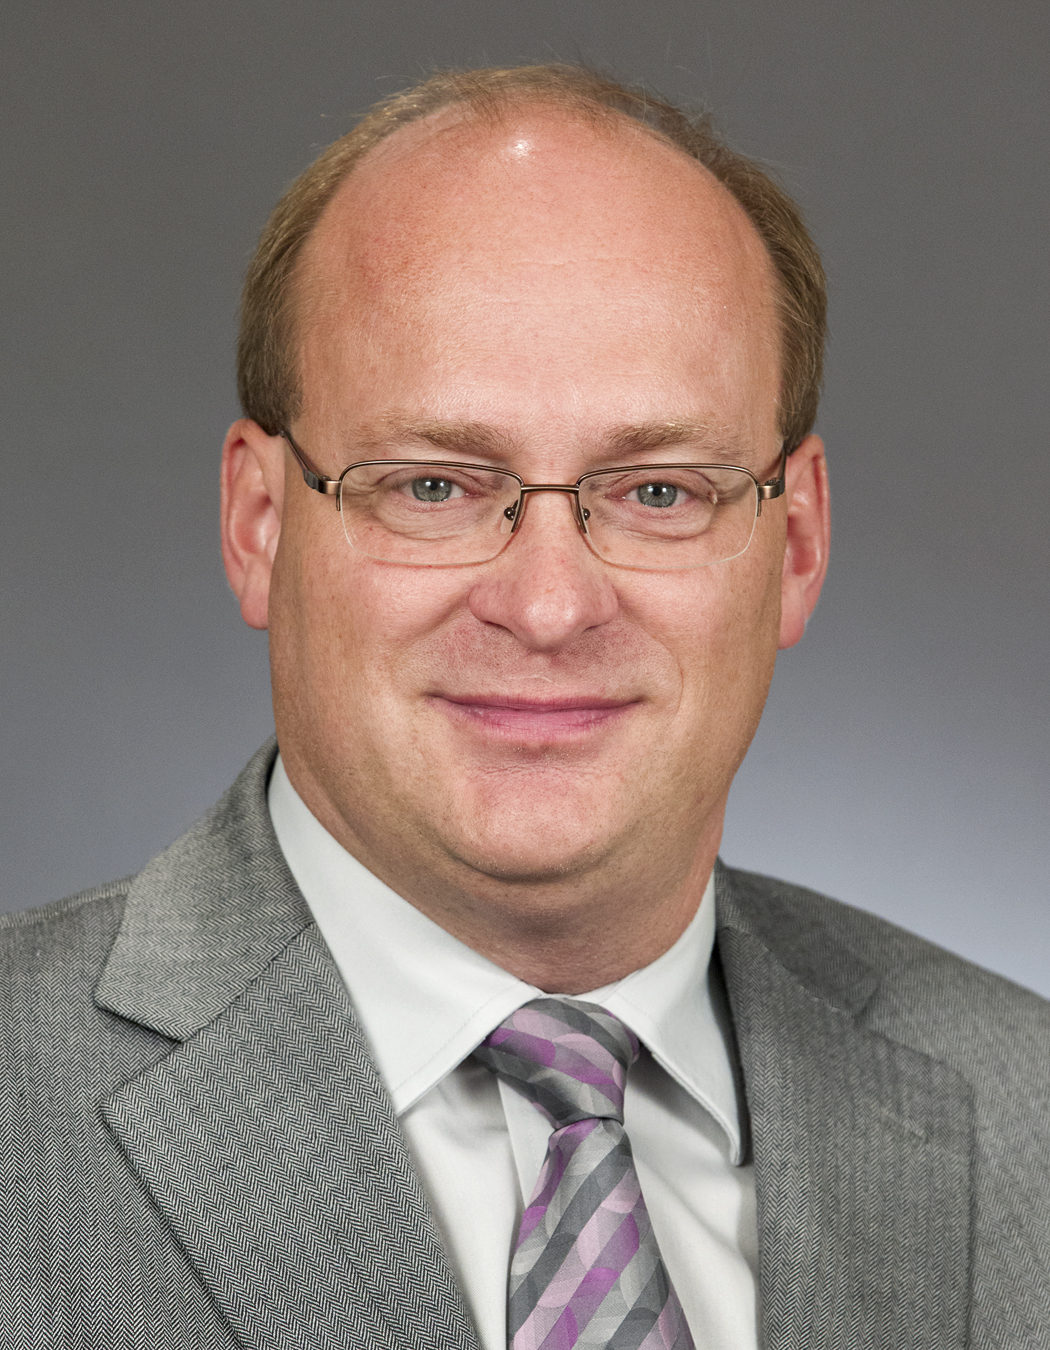 Representative Jeff Backer